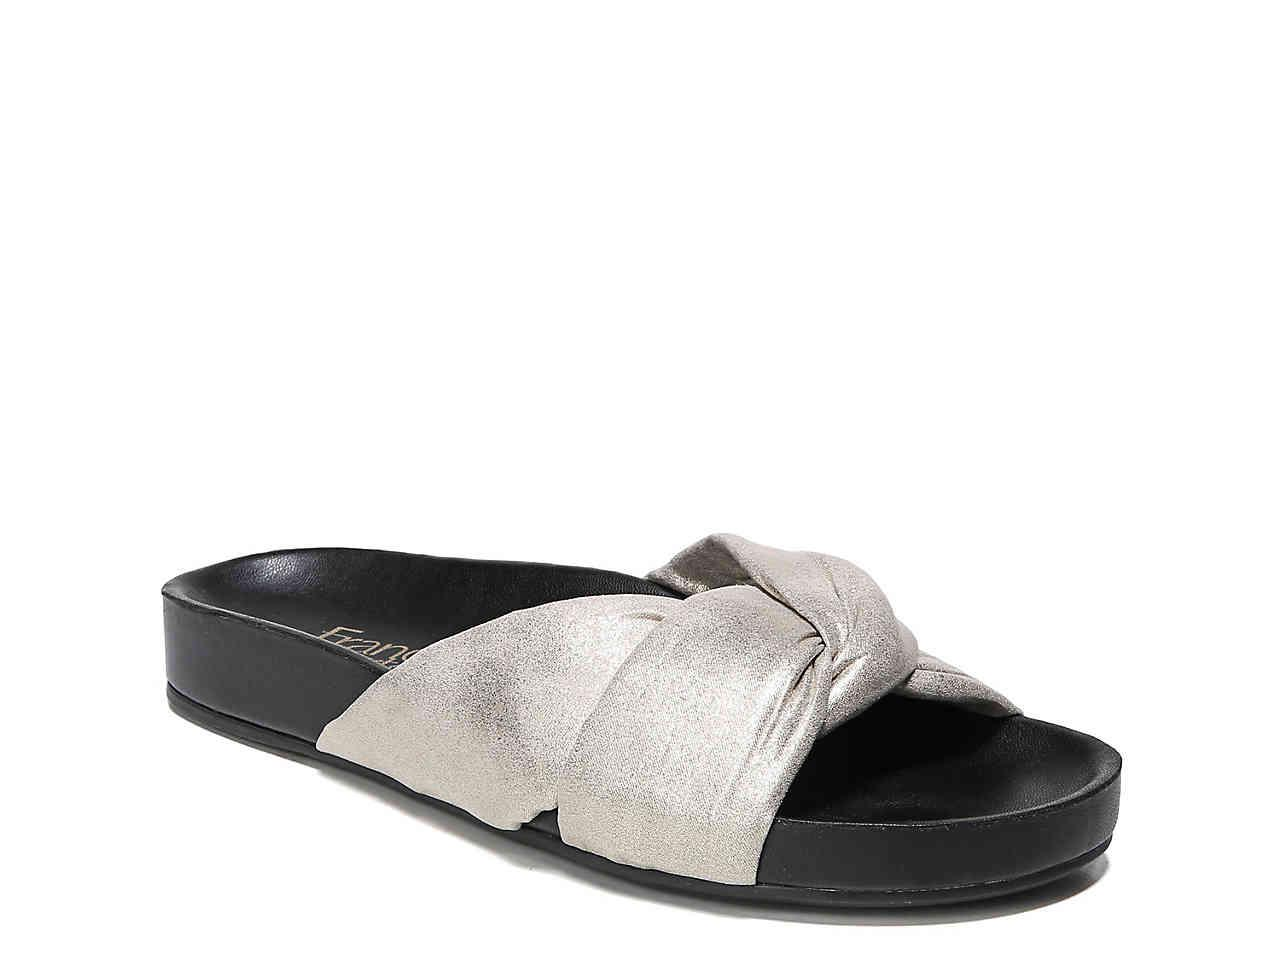 enjoy cheap online Franco Sarto Deano Suede Slide discount newest outlet geniue stockist fast delivery discount order wKzyDRjaV7